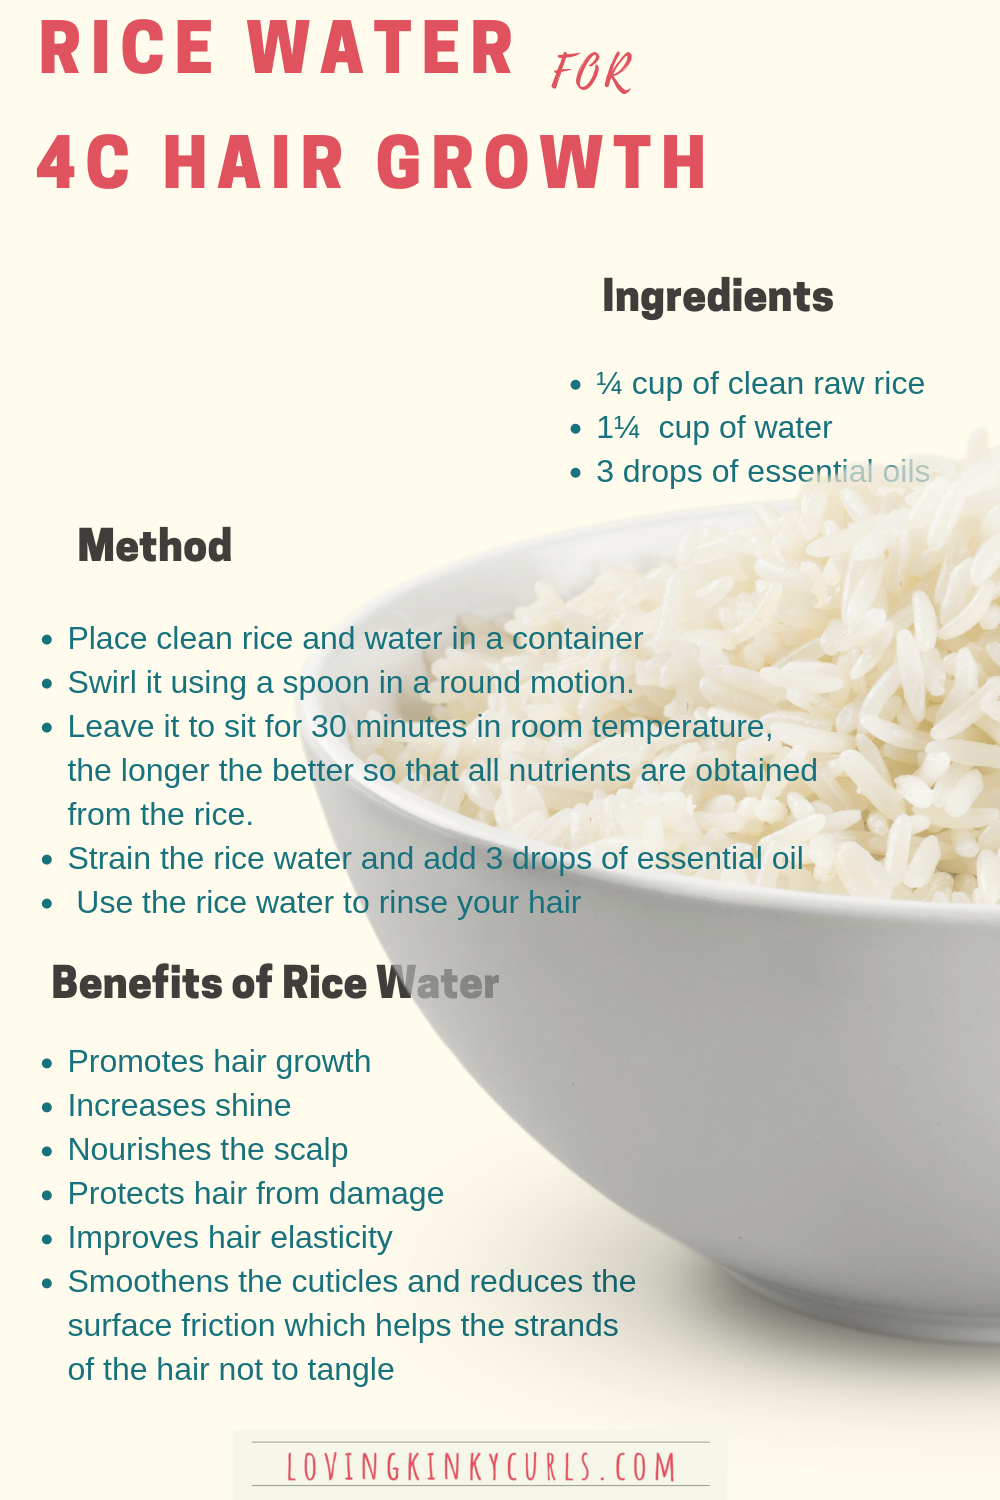 Rice Water Recipe for 4C Hair Growth